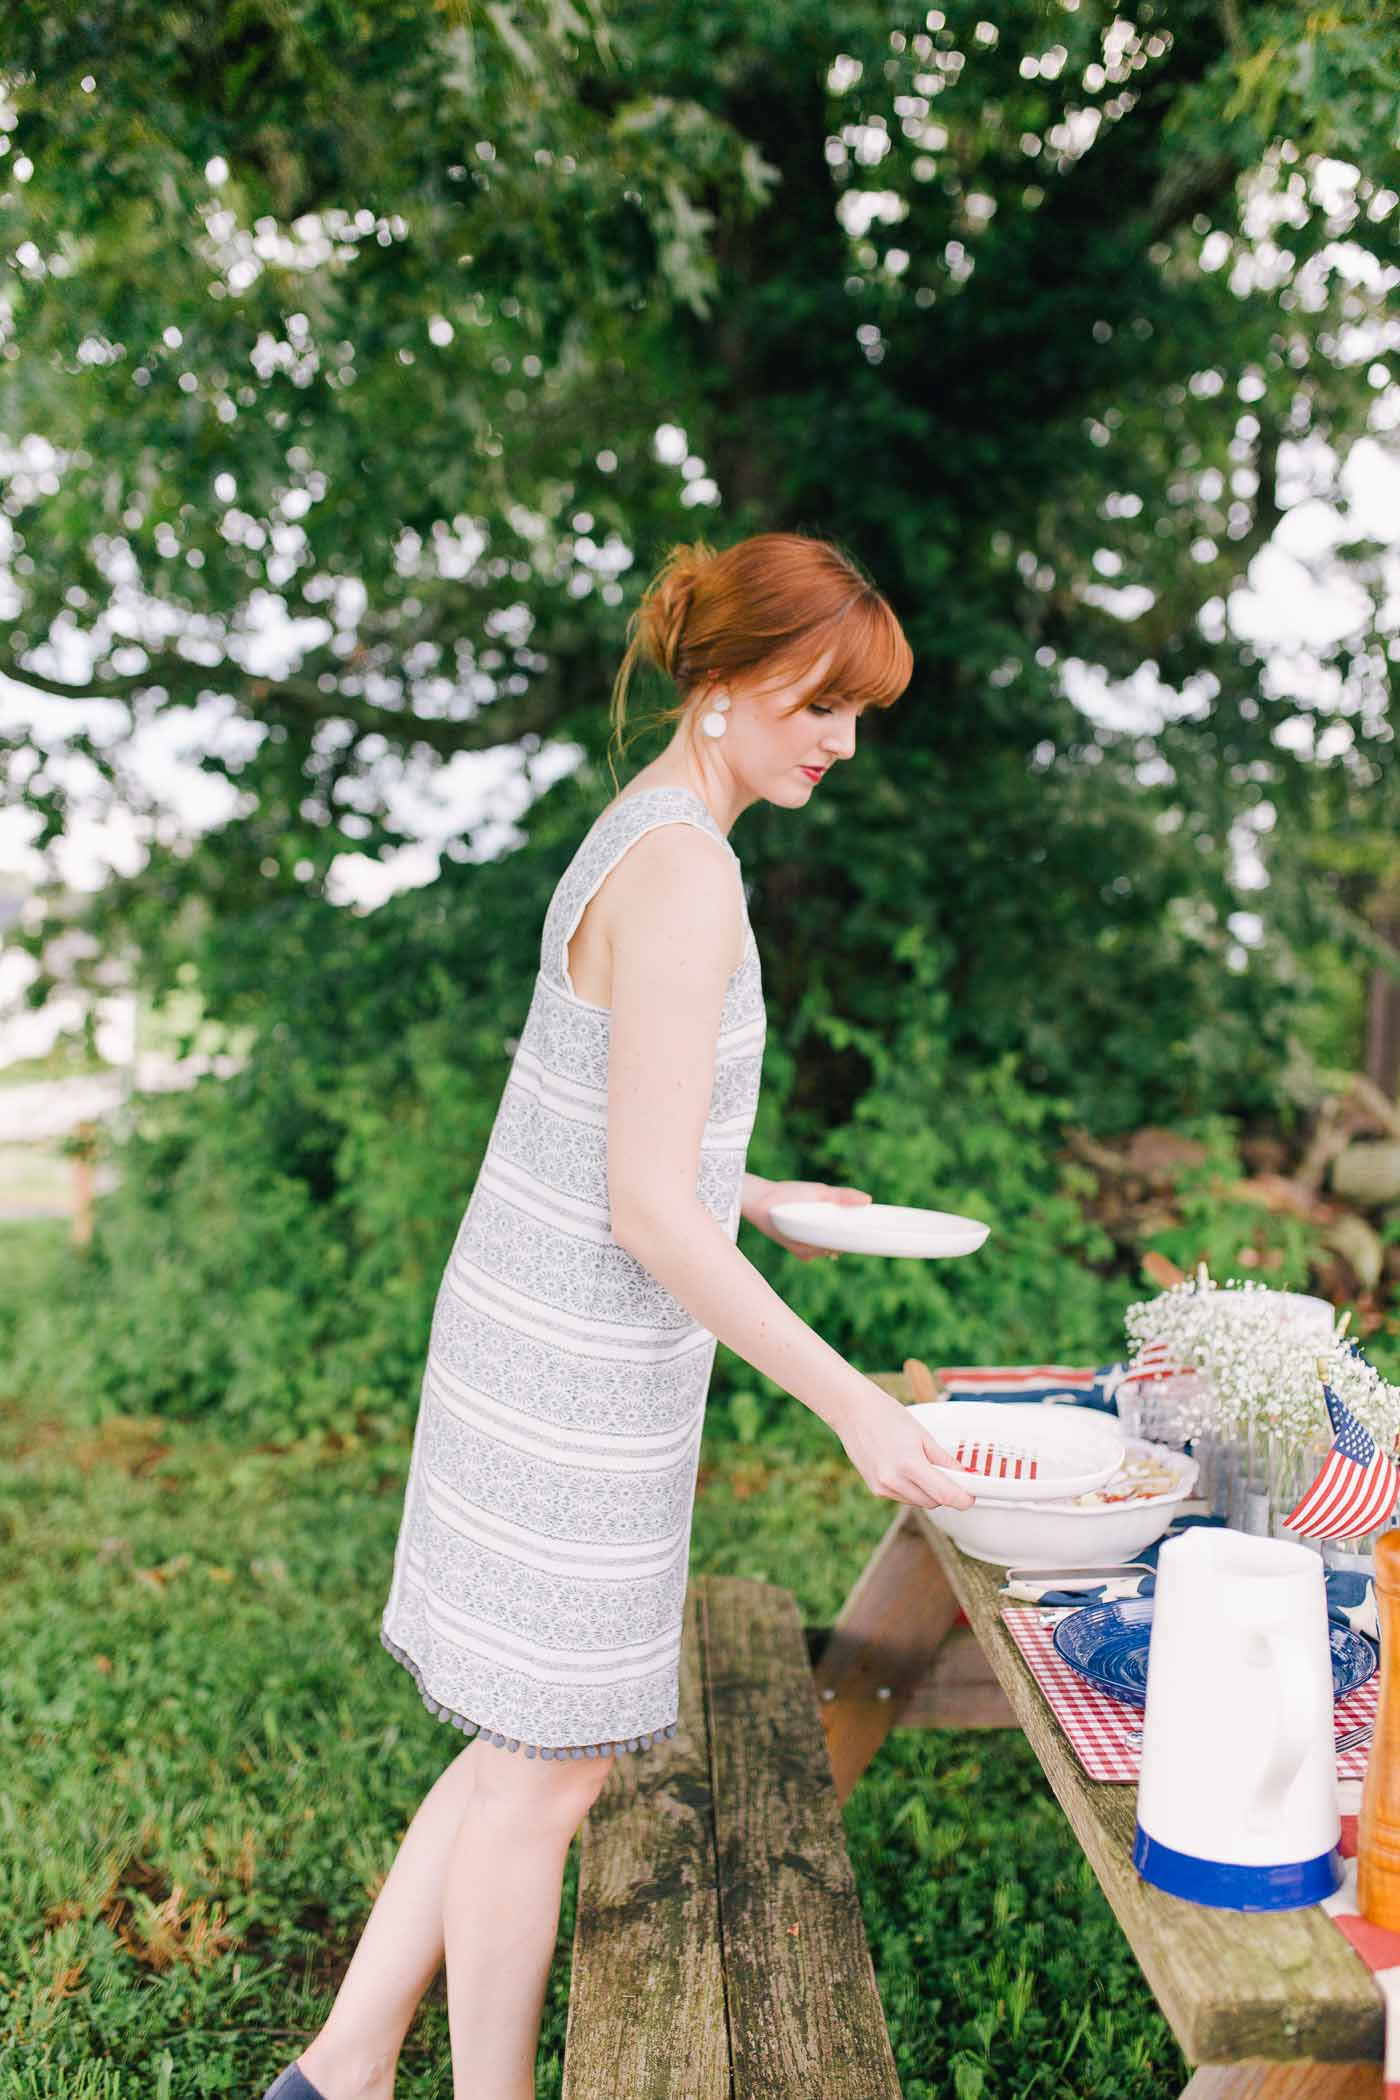 A Memorial Day picnic from menu to tablescape to attire by Lauren Cermak of the Southern Lifestyle Blog, Going For Grace.